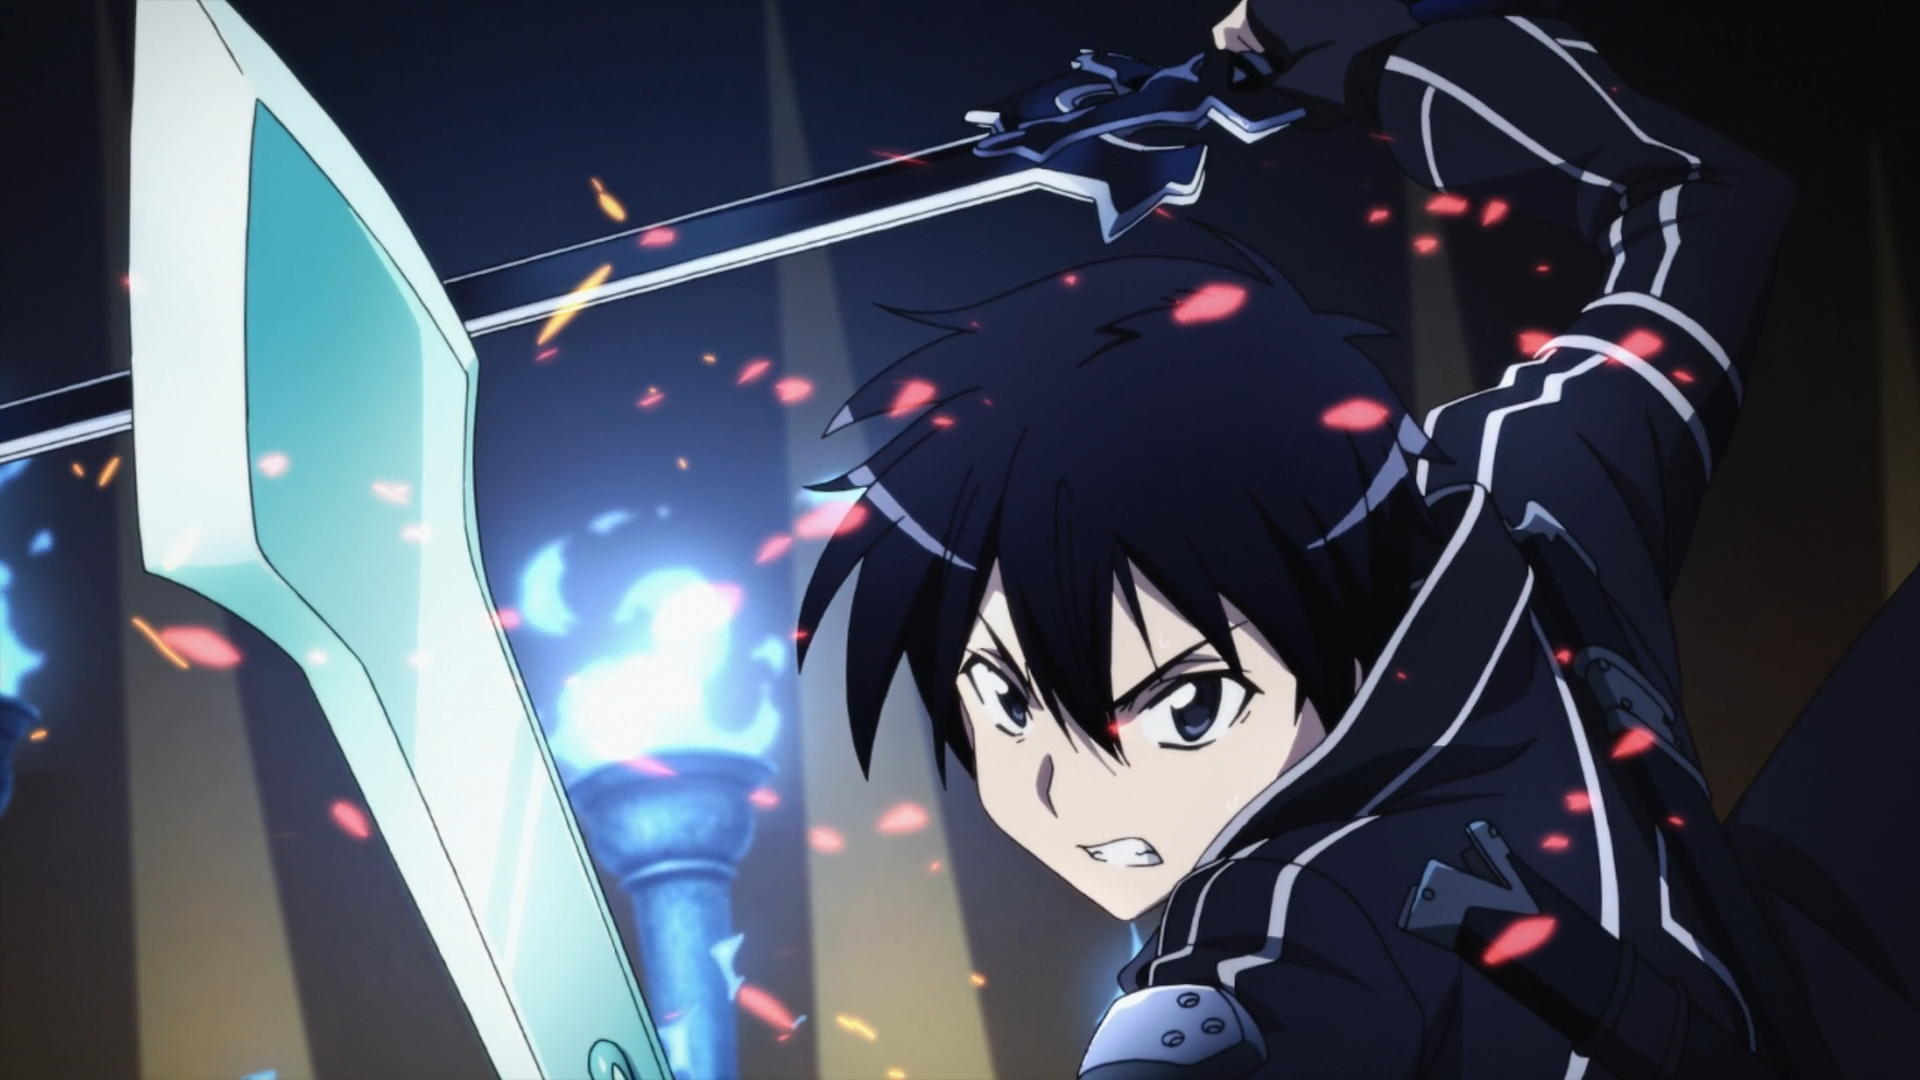 Sword Art Online Shows Promise, but Ultimately Disappoints